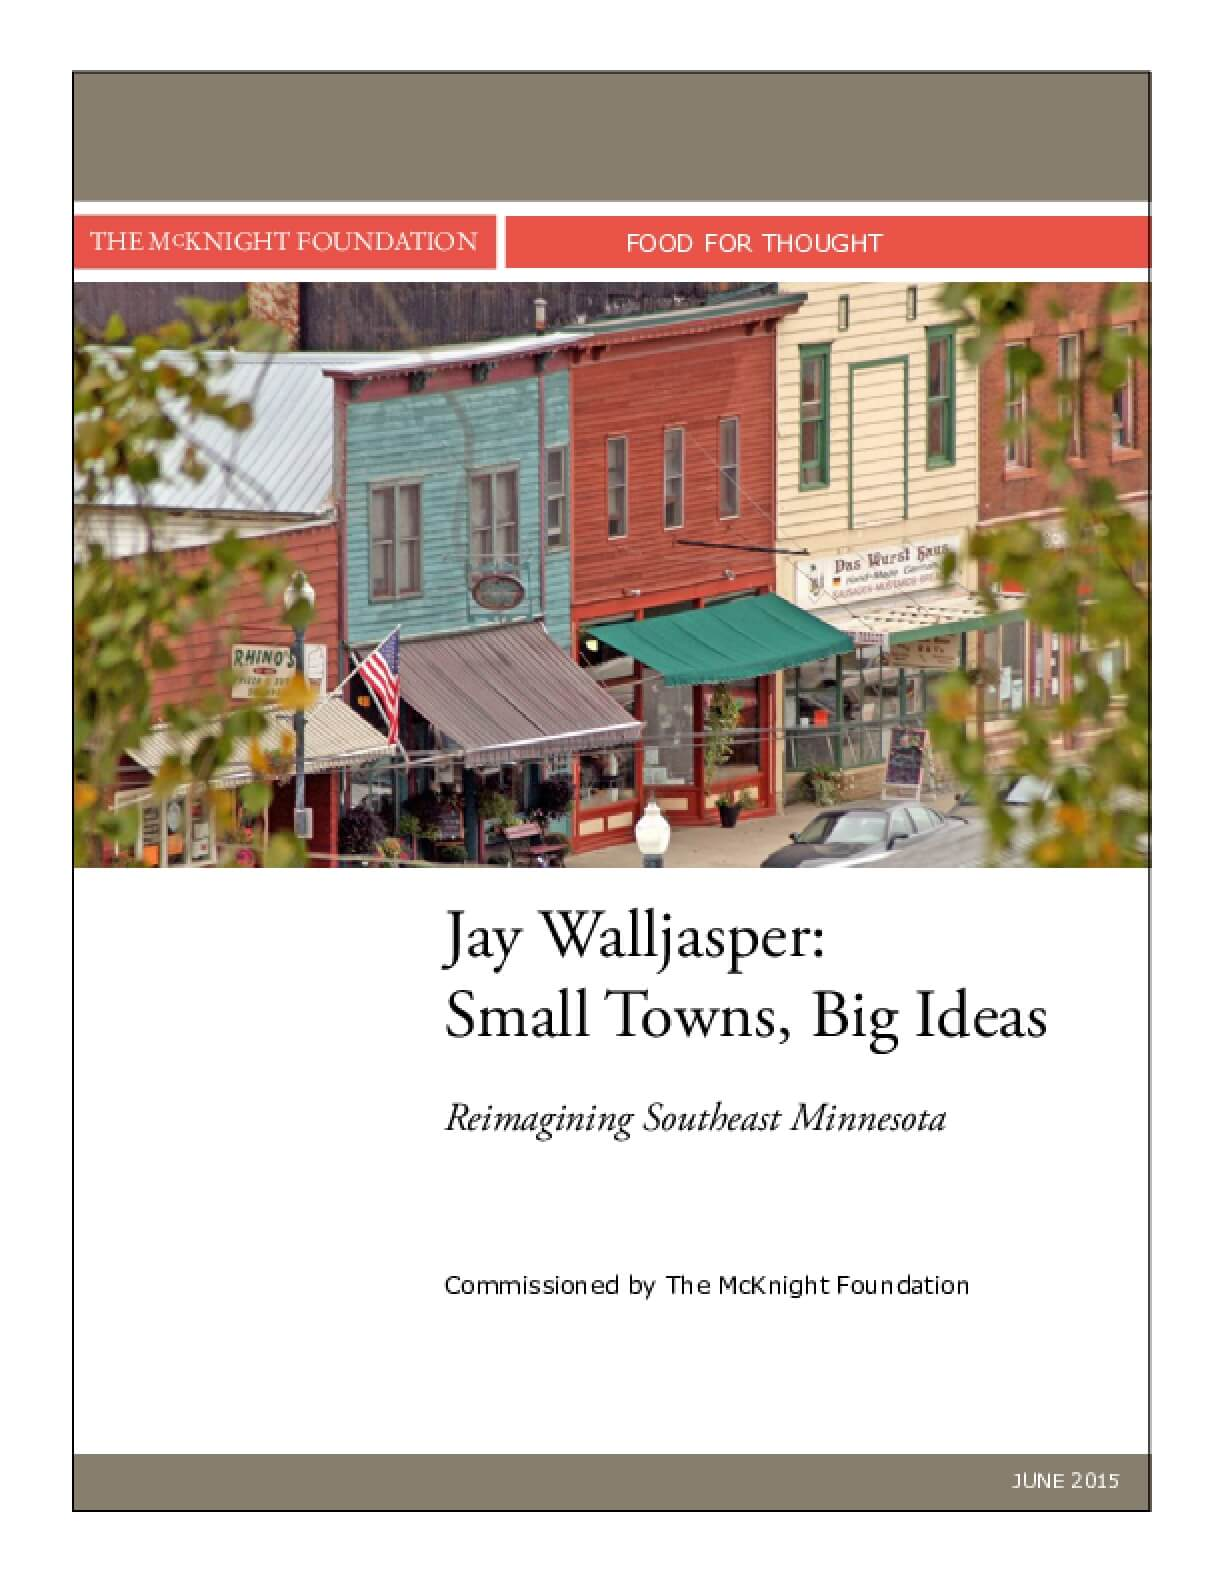 Food for Thought: Small Towns, Big Ideas